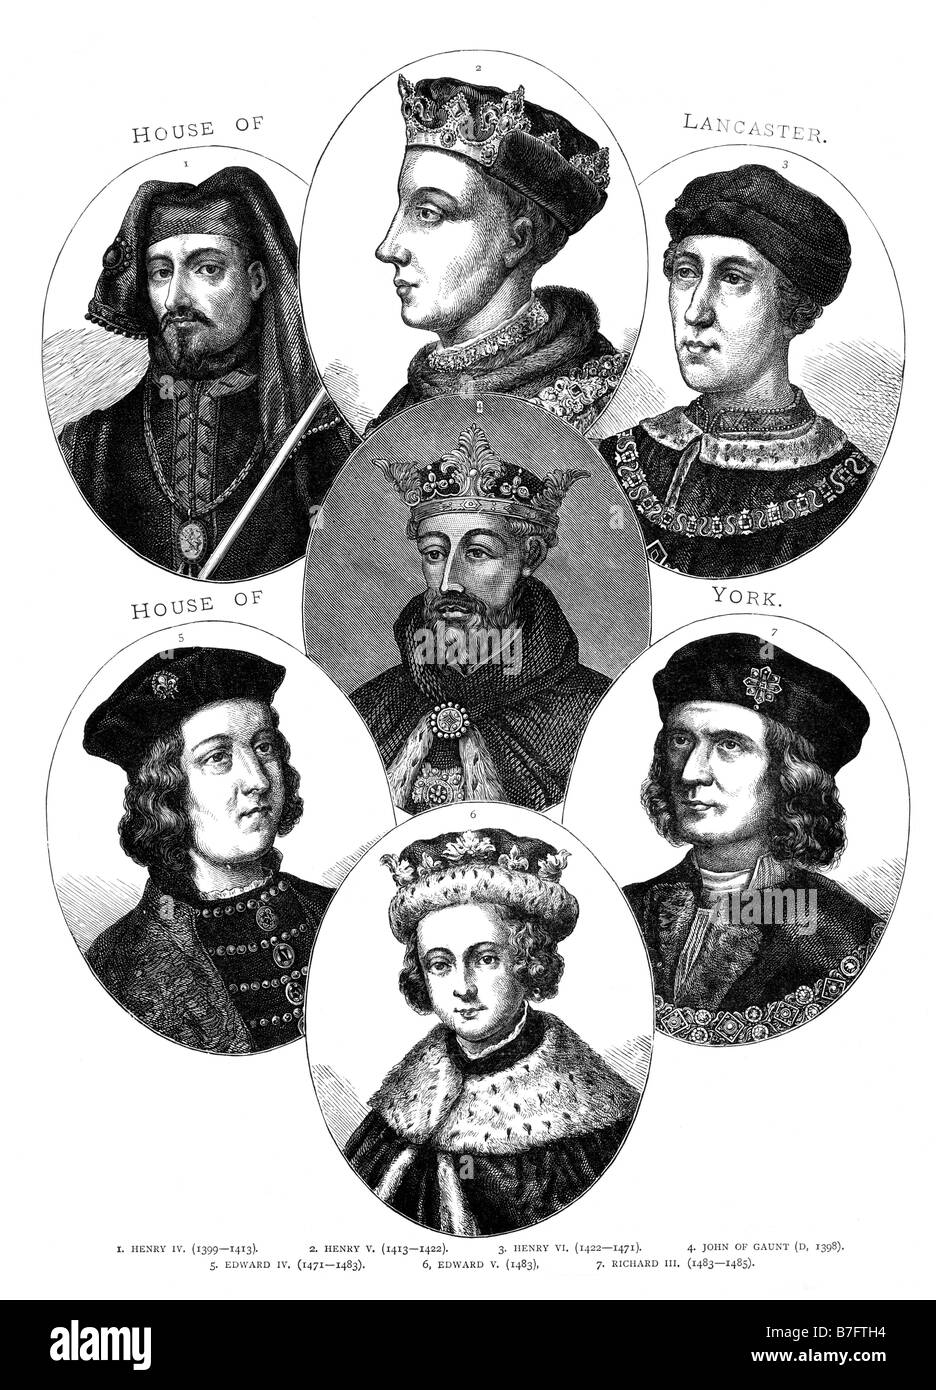 English Monarchs 1399 to 1483 Portraits Illustrations - Stock Image